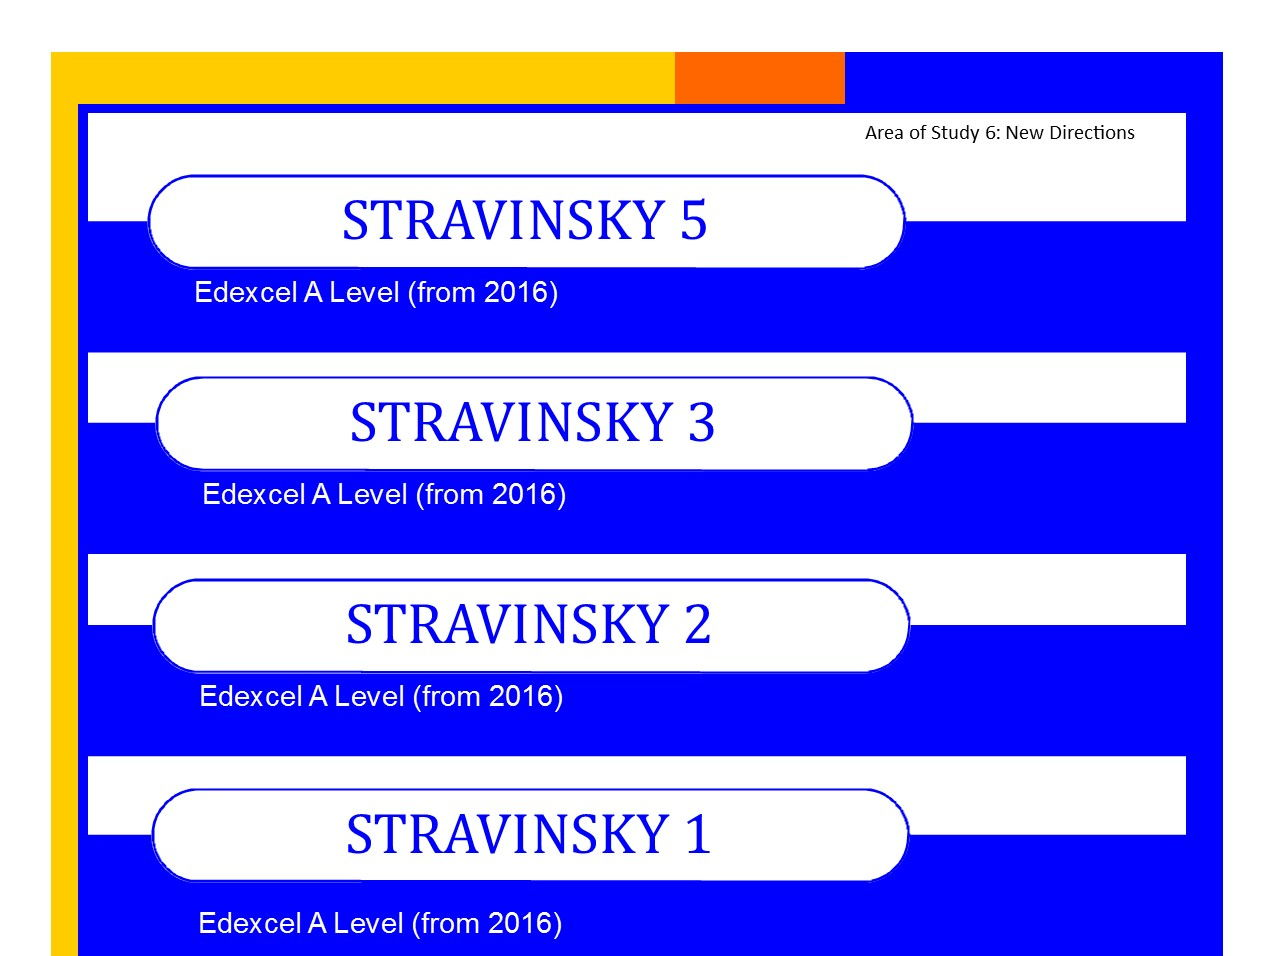 Bundle of Edexcel Music A level (from 2016) Stravinsky worksheets 1,2,3 and 5 PLUS Elements of Music summary sheets.